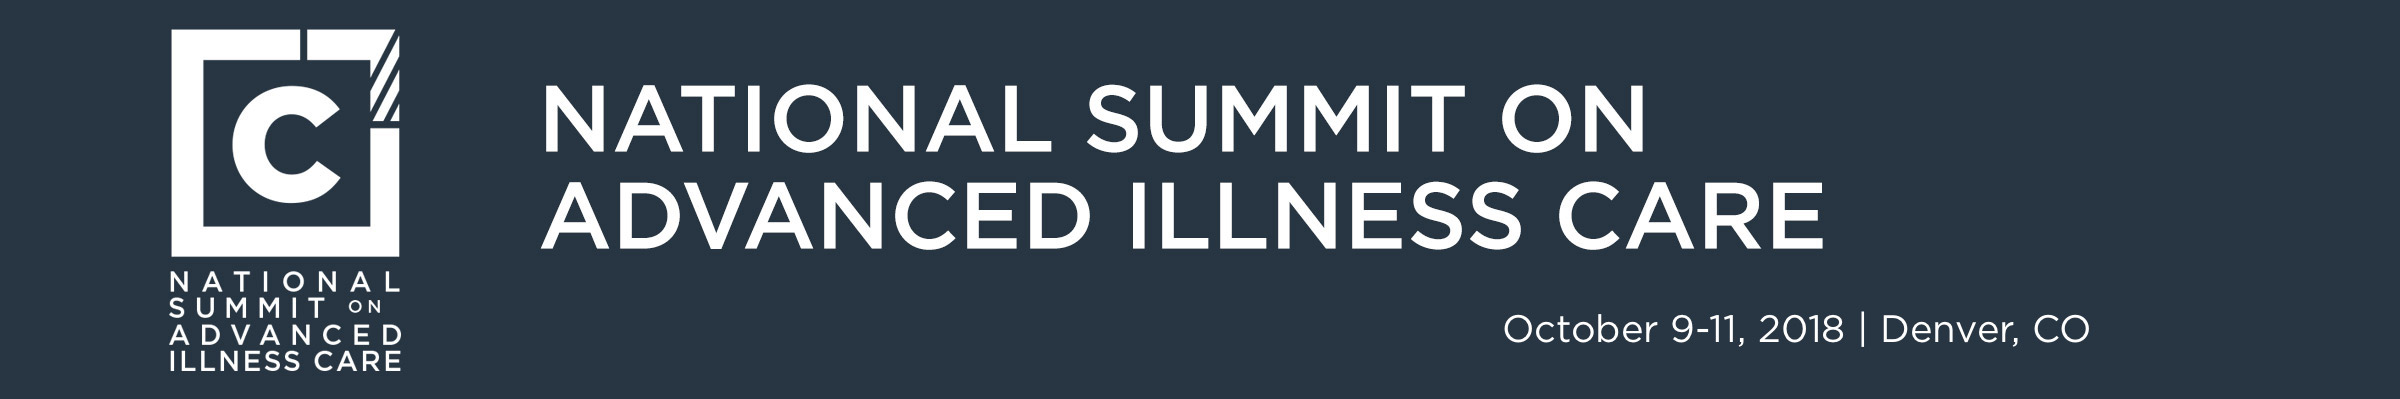 2018 National Summit on Advanced Illness Care